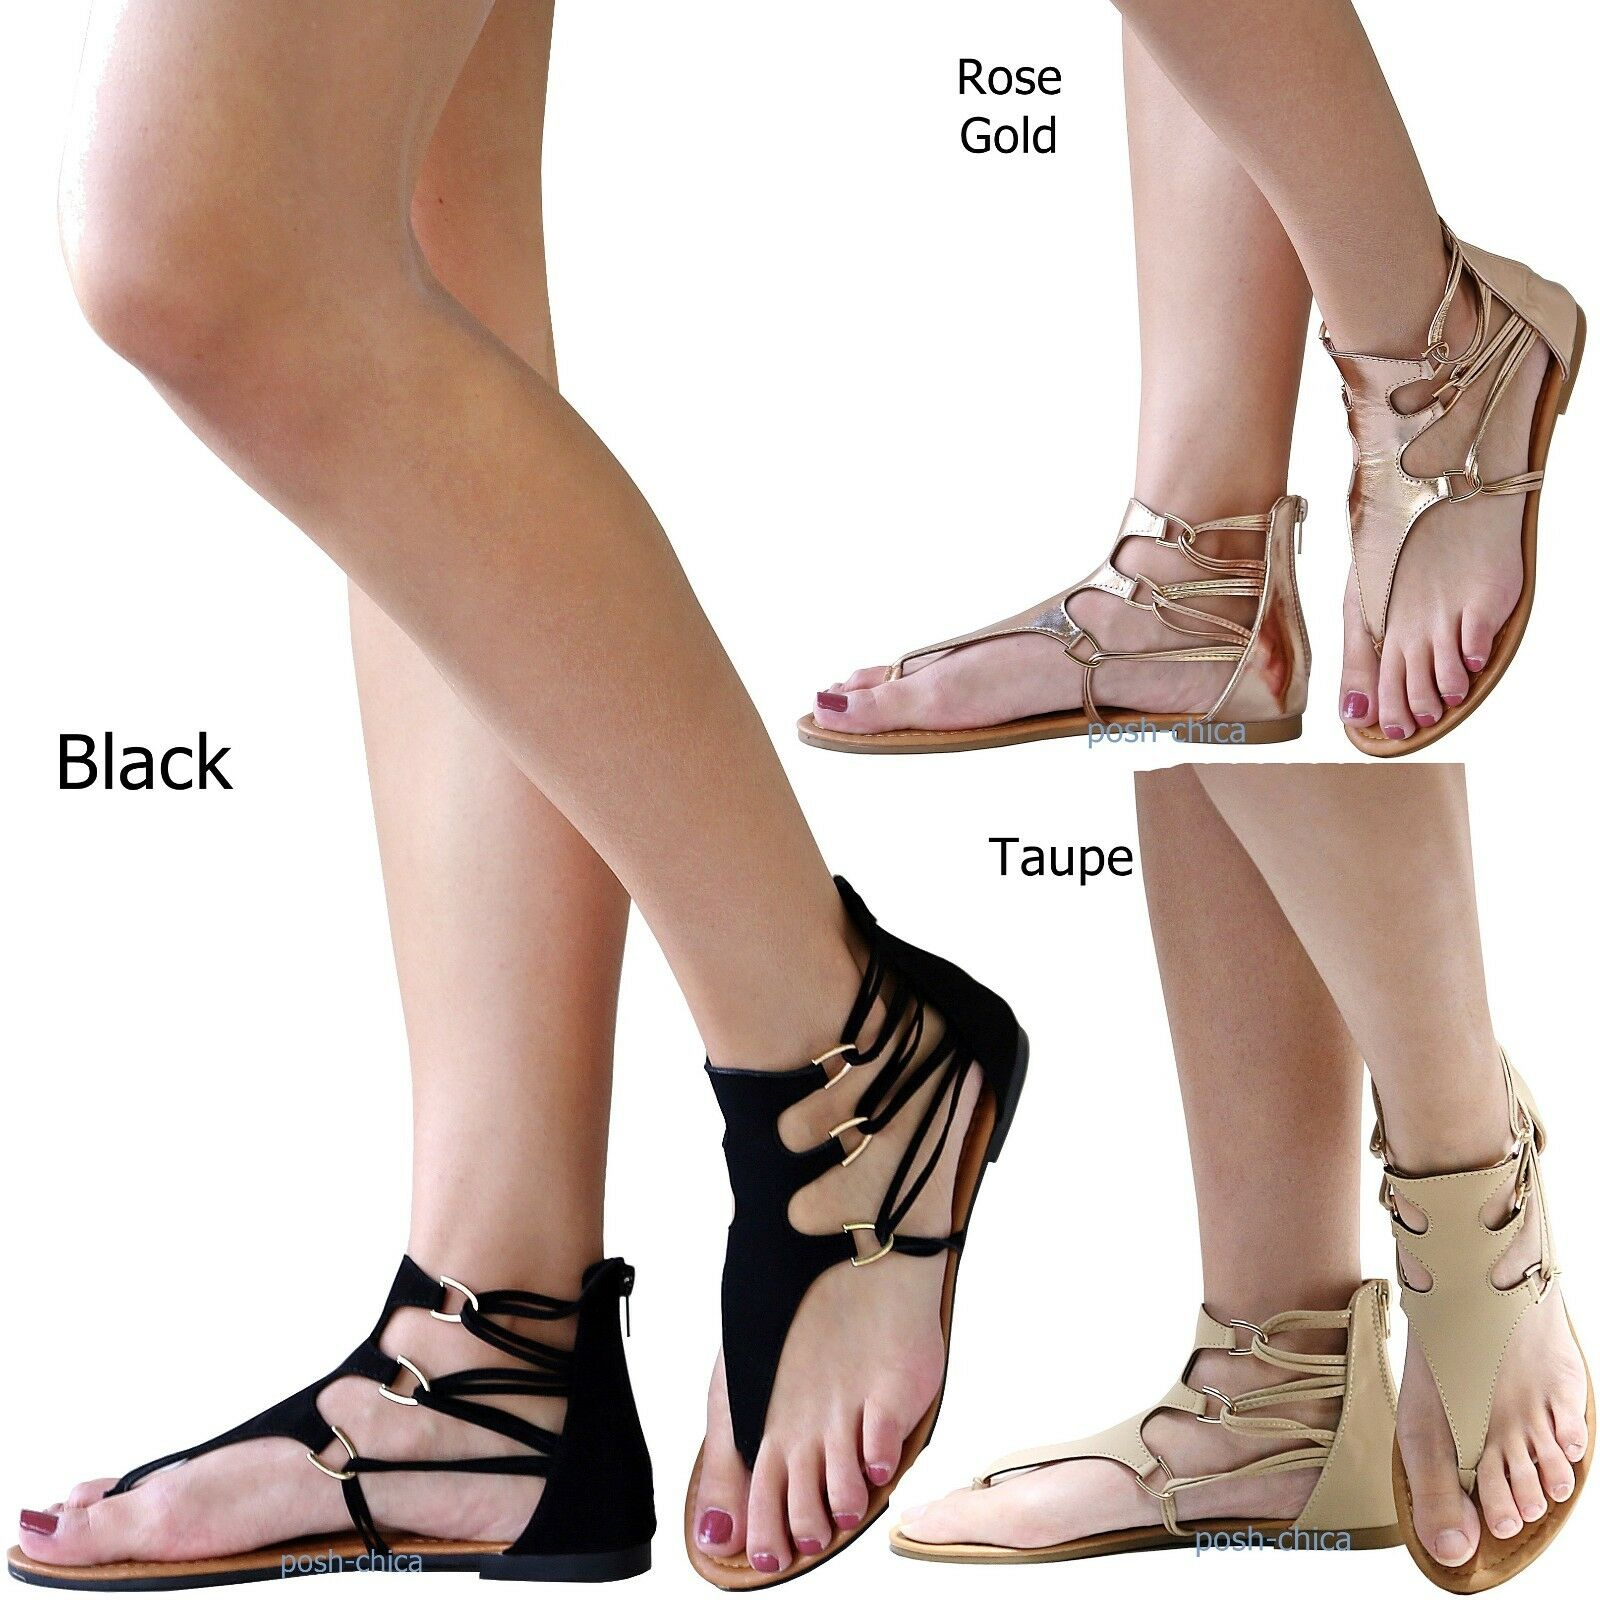 745a3e63b New Women ANik Black Taupe Rose Gold Gladiator Strappy Strappy Strappy  Thong Flat Sandals 5.5-